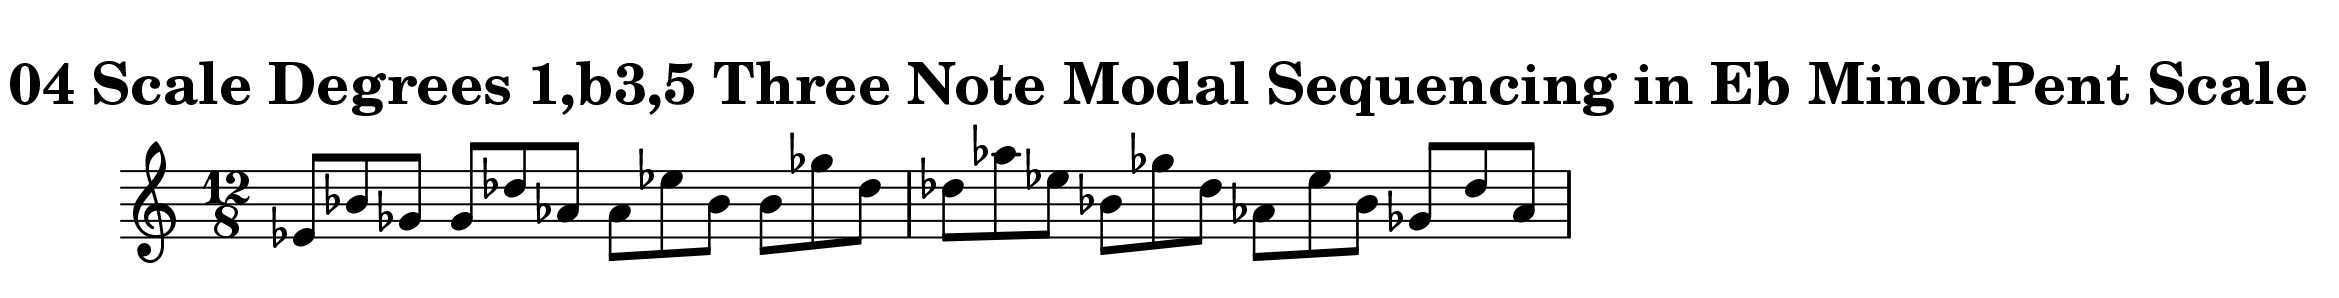 Eb Minor Pentatonic Scale Modal Sequencing 3 Note Group 3 for all instrumentalist by Bruce Arnold for Muse Eek Publishing Company